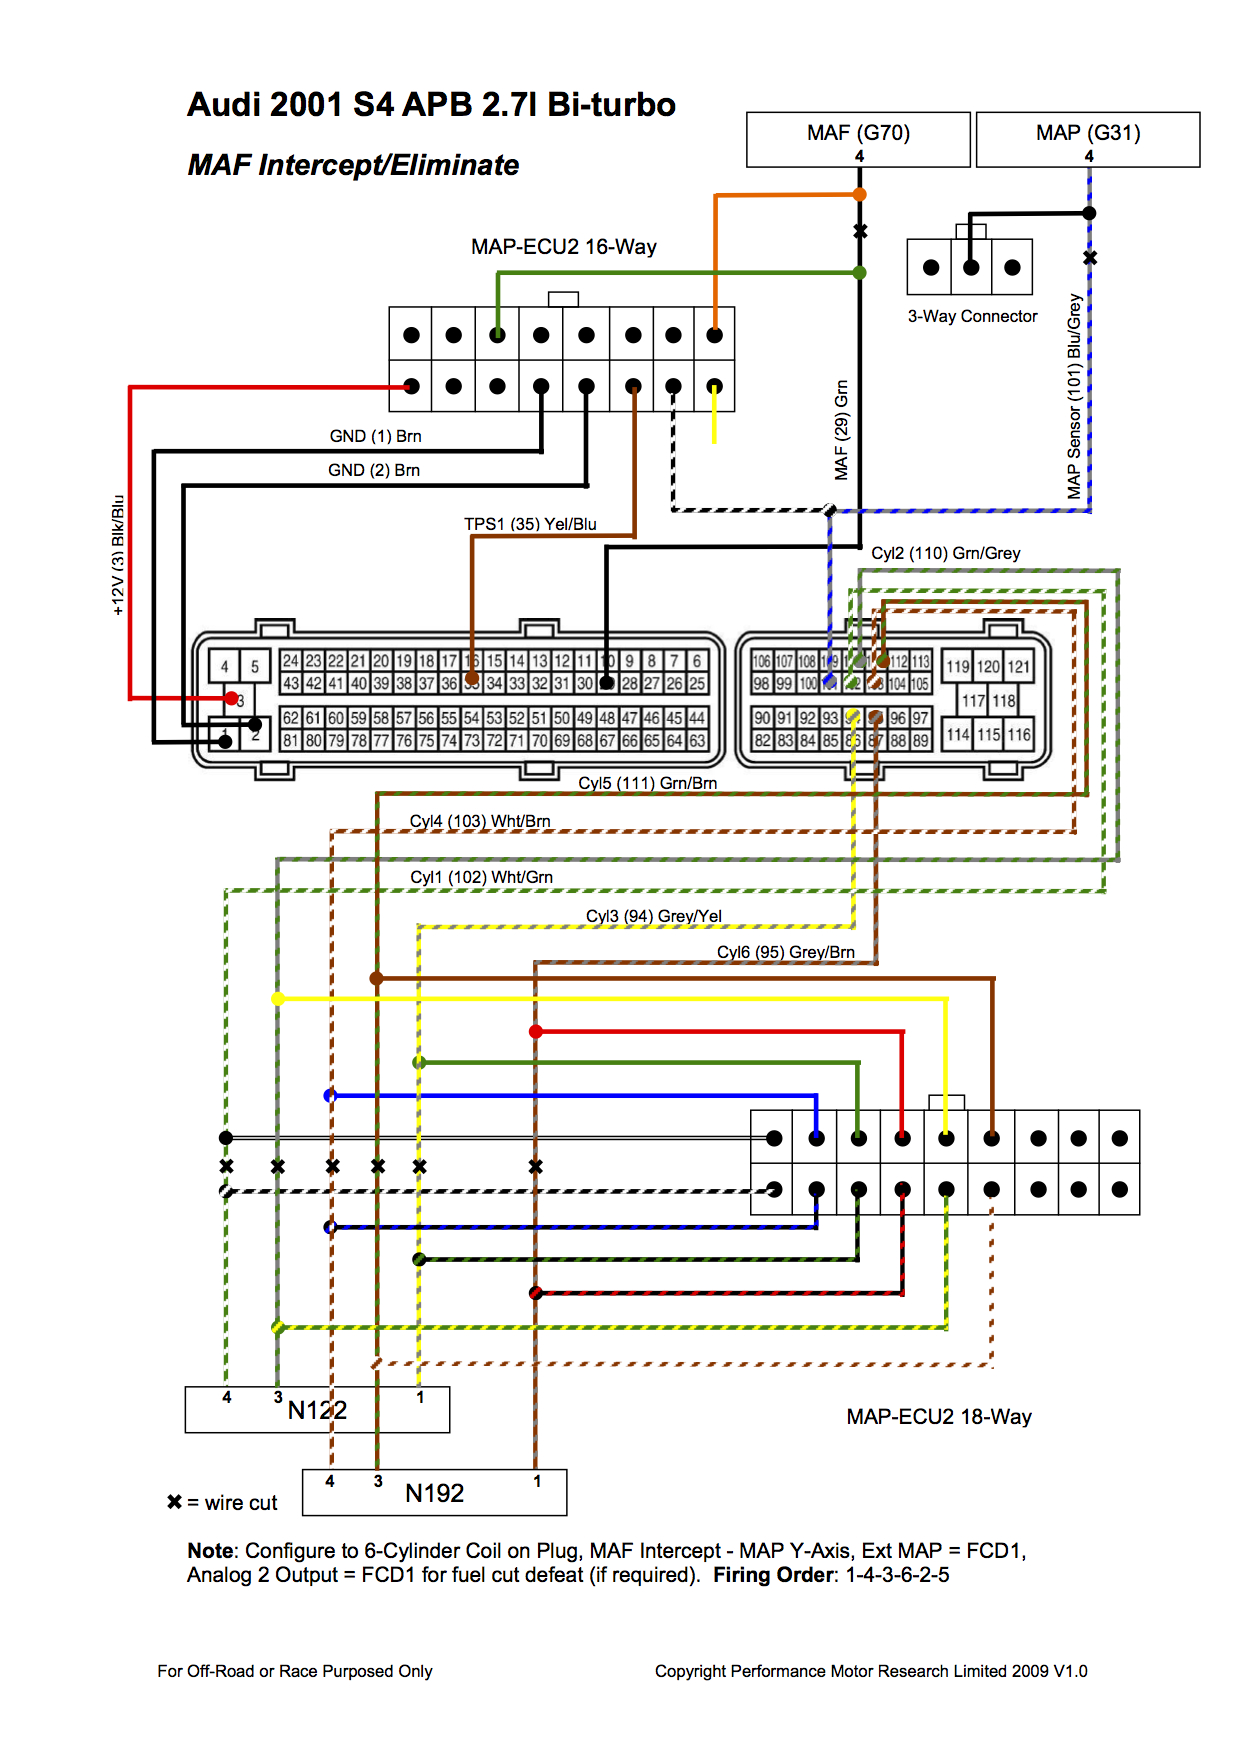 Audi S4 20011 ecu wiring diagram paccar ecu wiring diagram \u2022 wiring diagrams j 2001 toyota camry wiring diagram pdf at bakdesigns.co